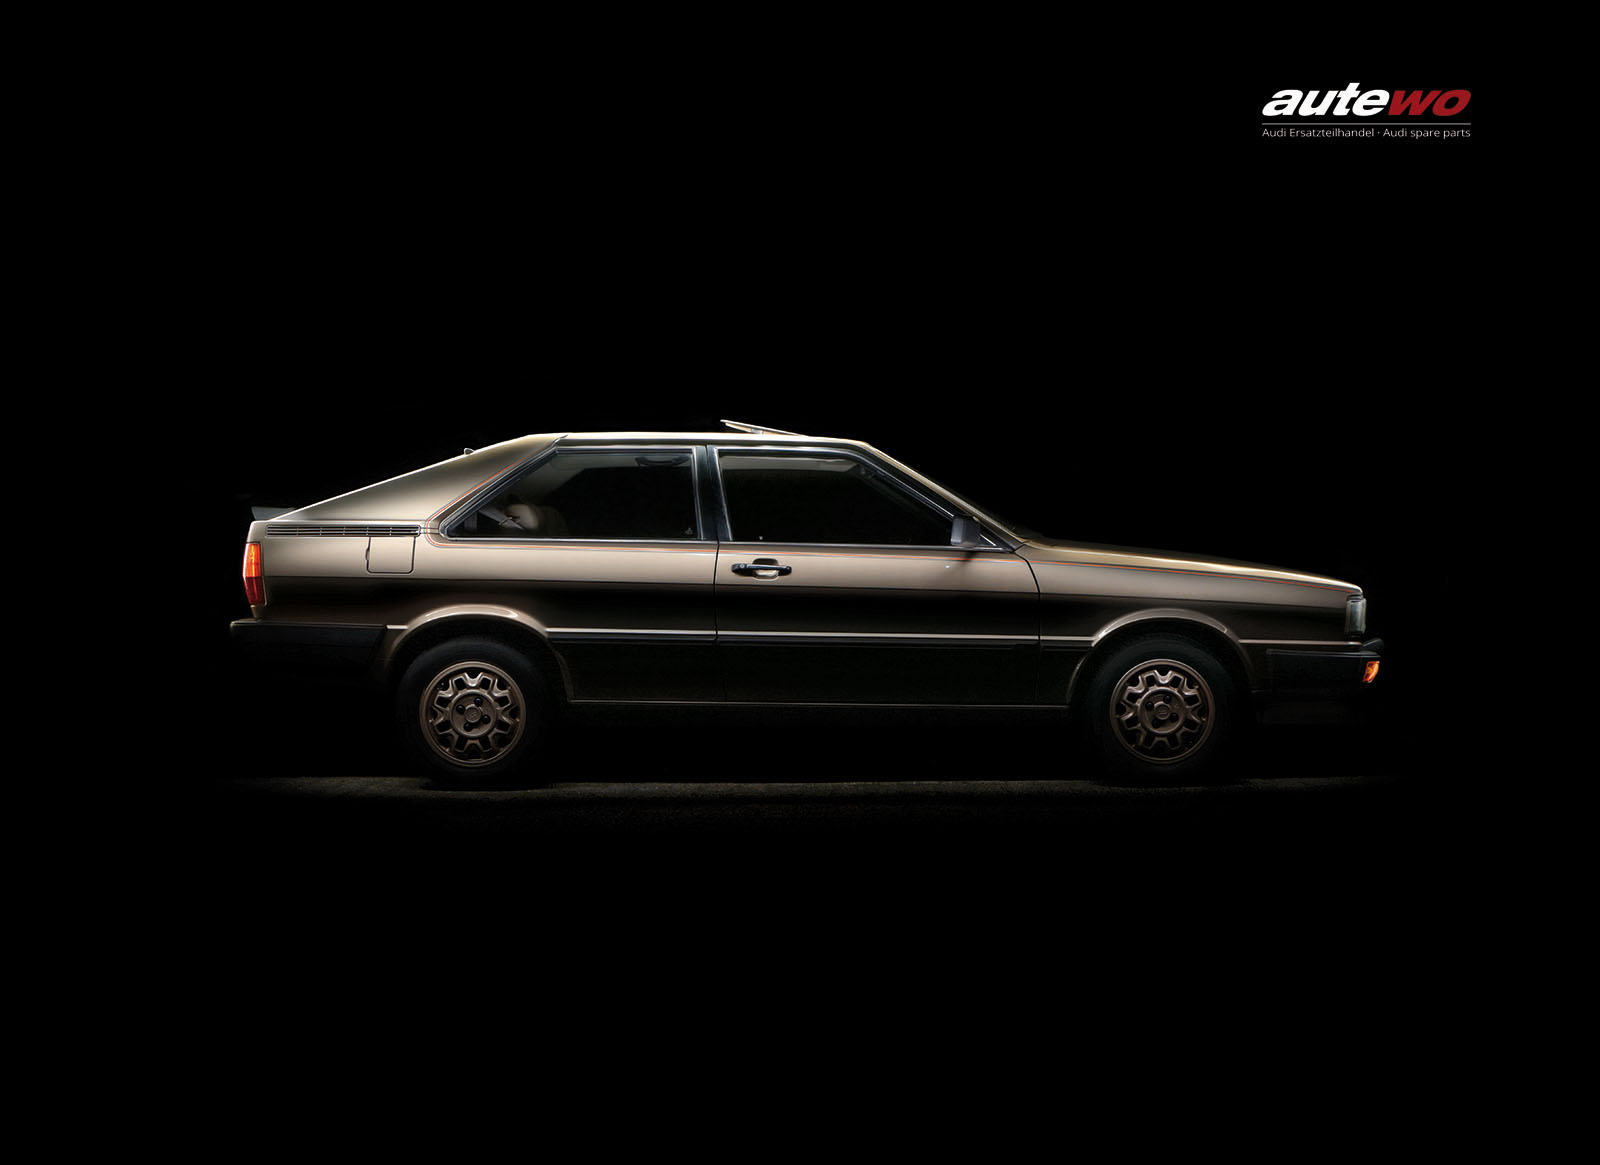 autewo-Poster DIN A2 Audi Coupe Typ 81 Gold Edition